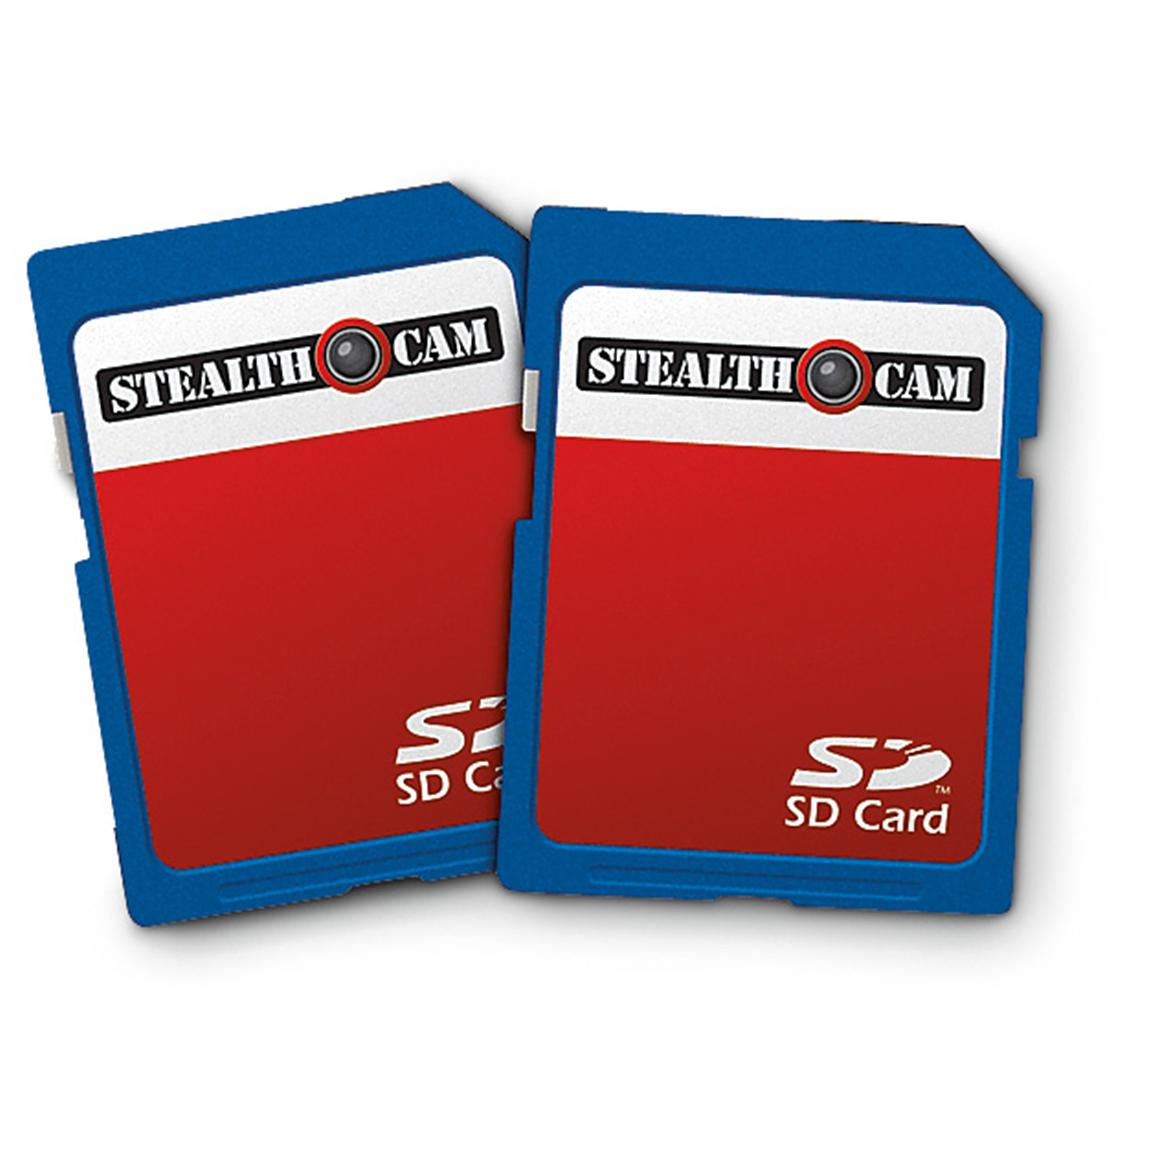 2 Stealth Cam® 2GB Memory Cards